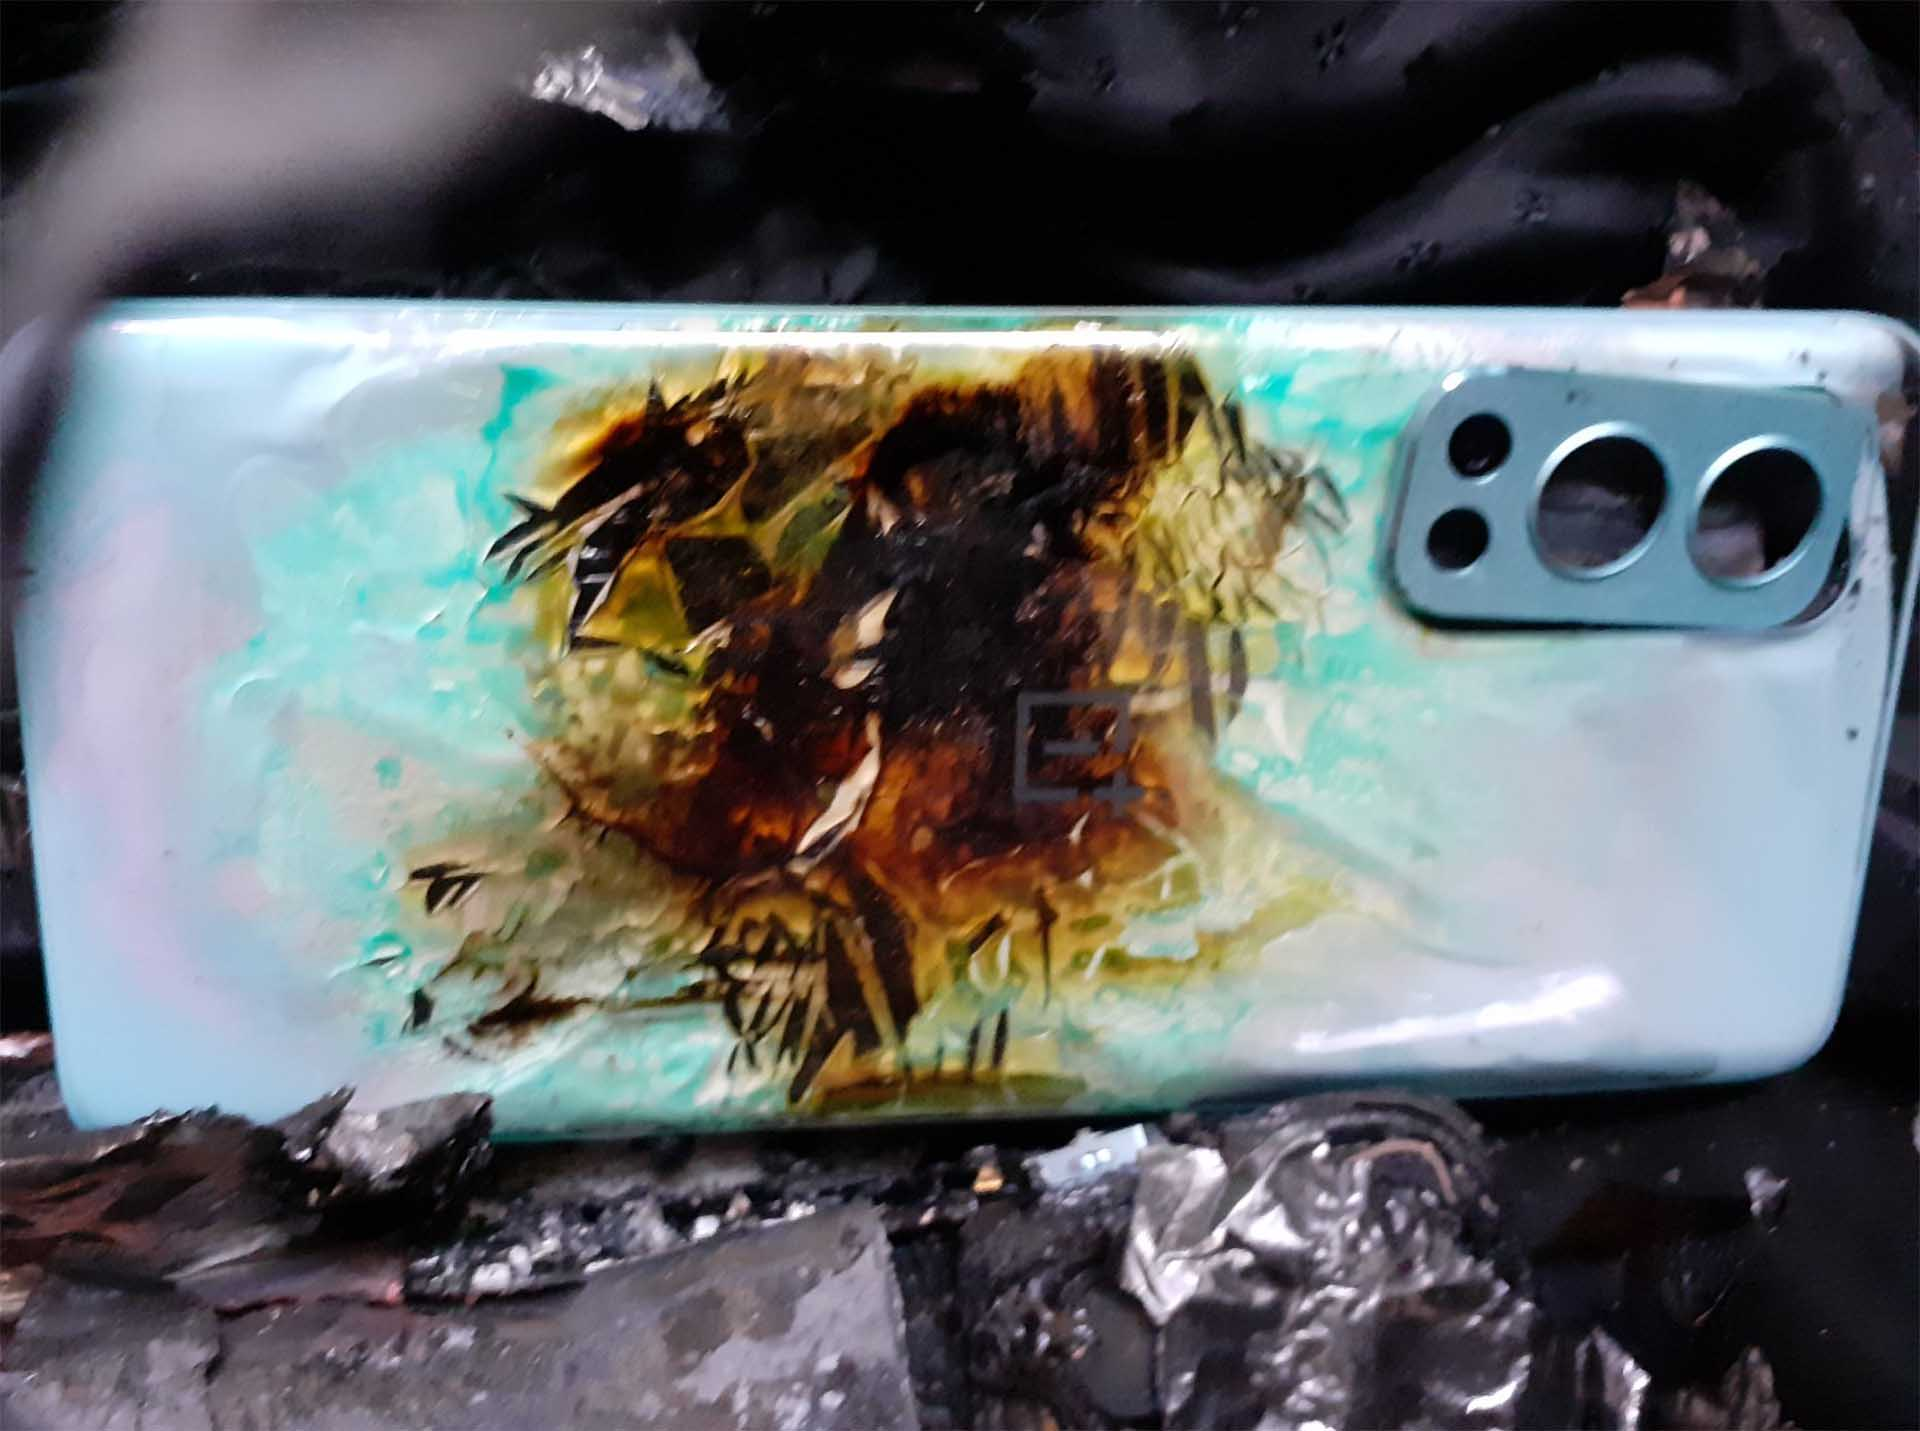 OnePlus Sends 'Cease and Desist' Letter to Customer Over Exploded Nord 2